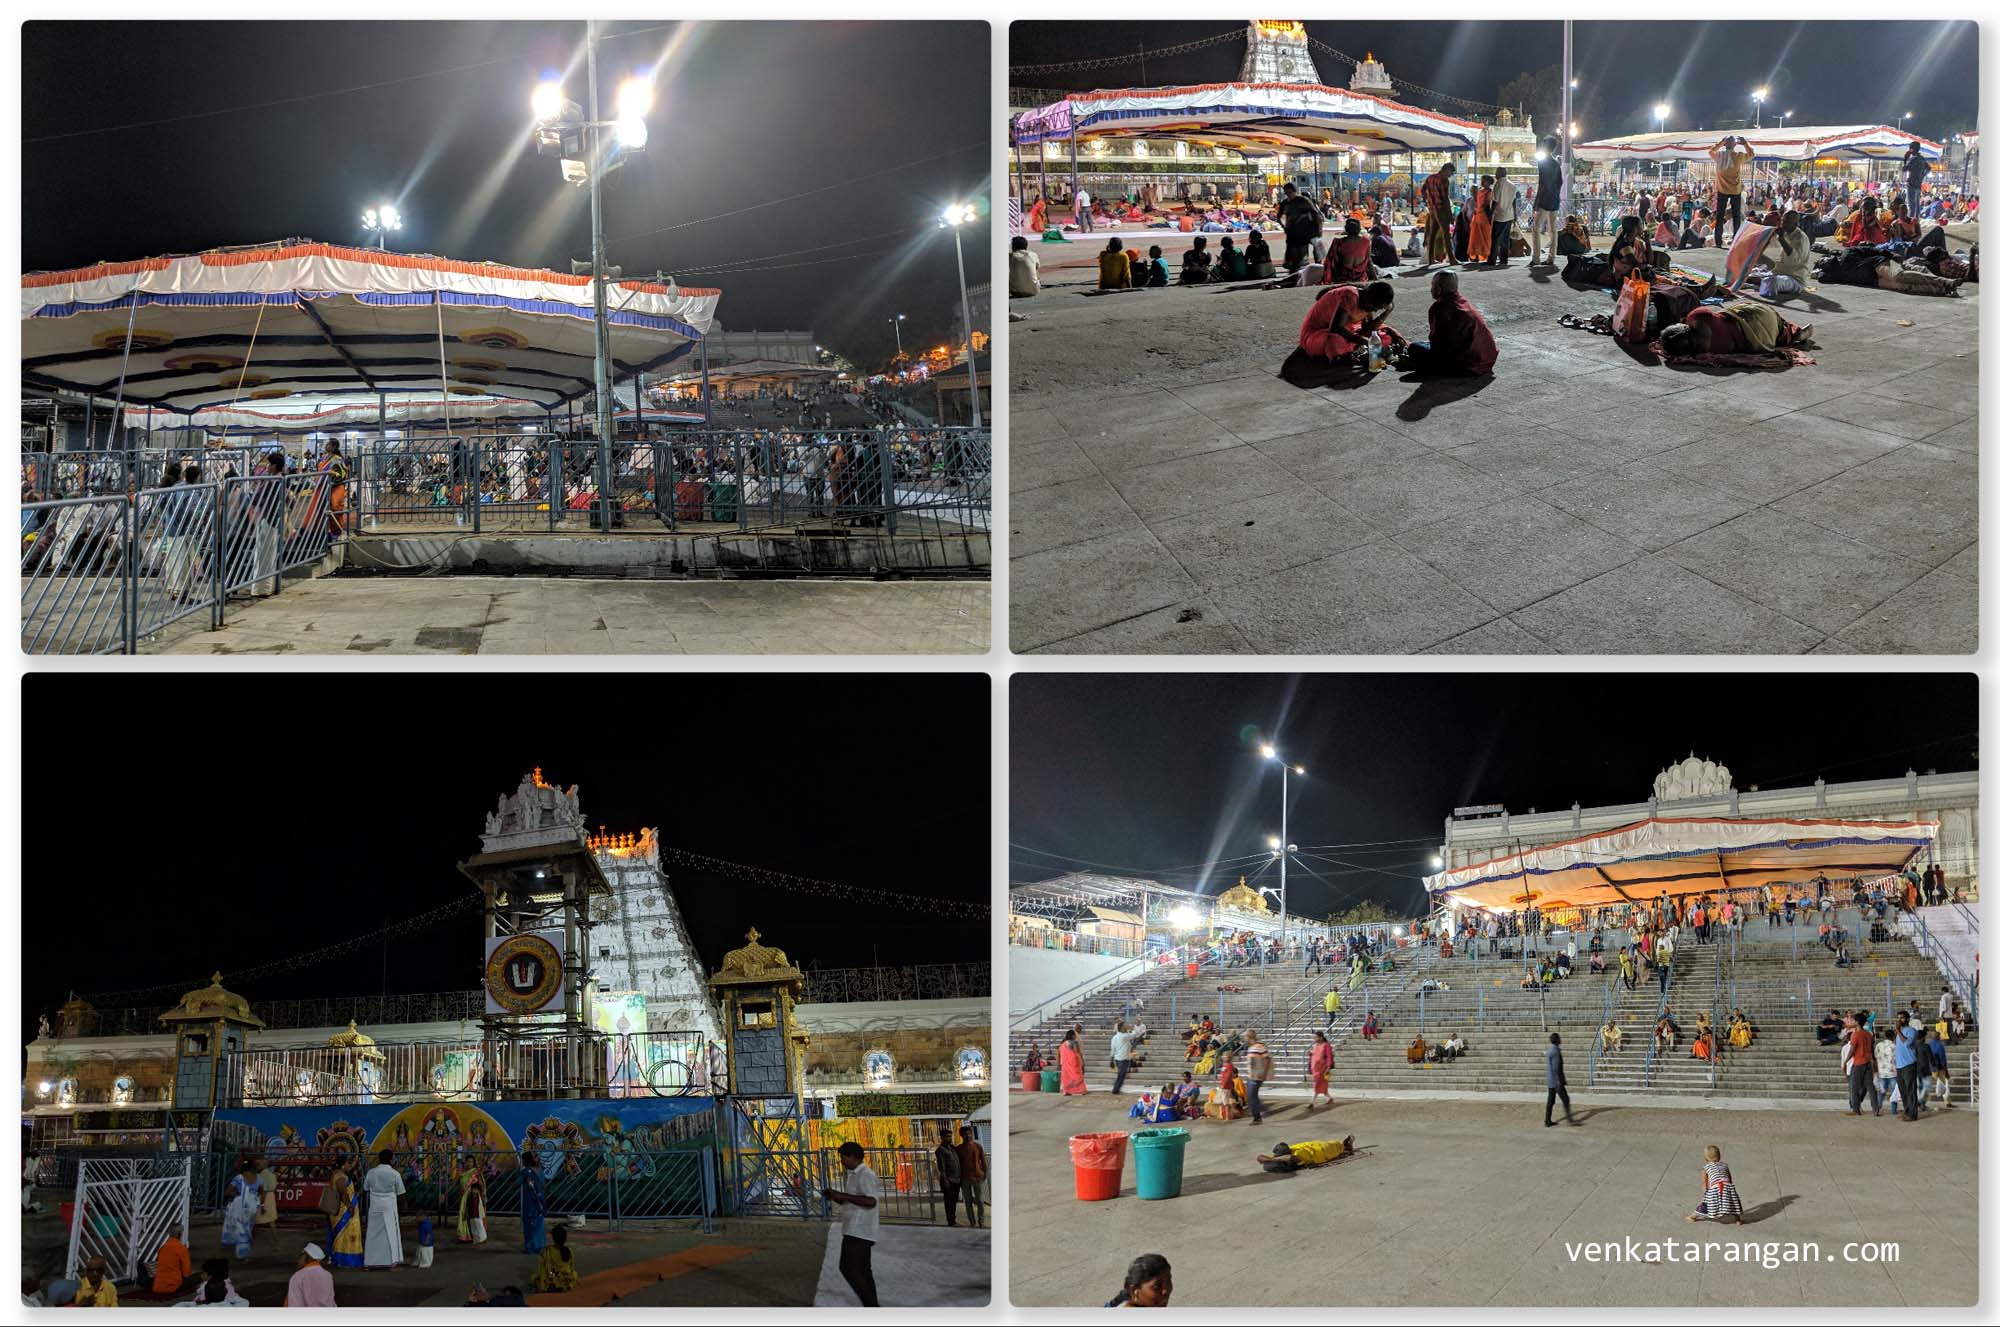 There are a sea of devotees always in Tirumala - though there are plenty of guesthouses (free and paid), many devotees still prefer (or can only afford) to sleep for the night on the open areas around the temple